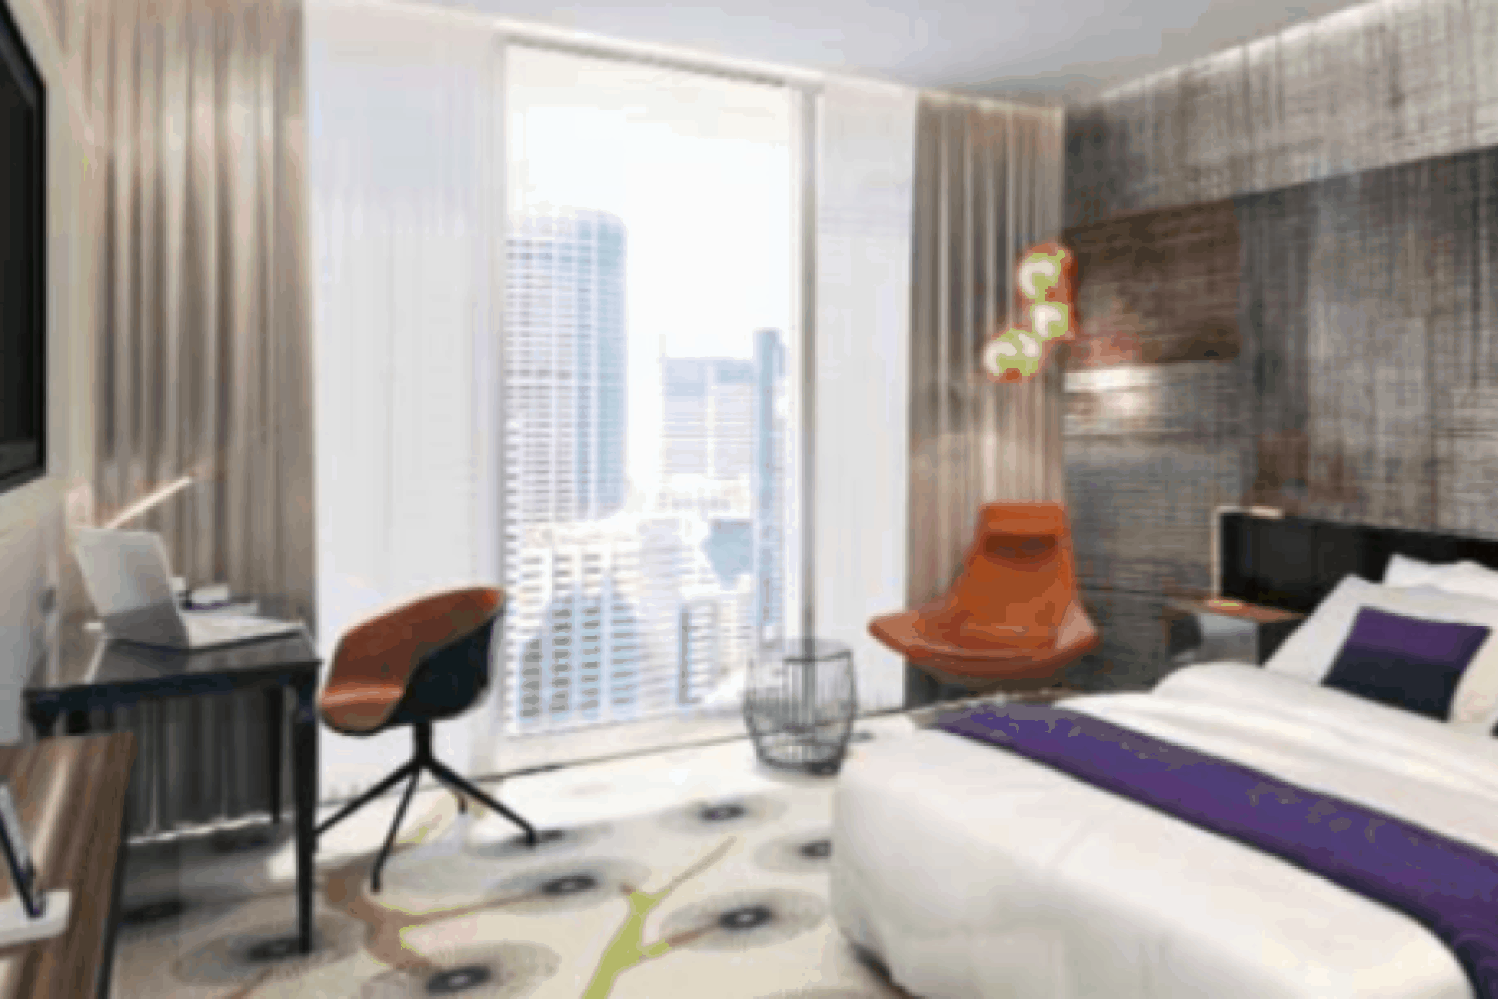 Park Regis hotel in Sydney room design drawing with bed, table and view of the city